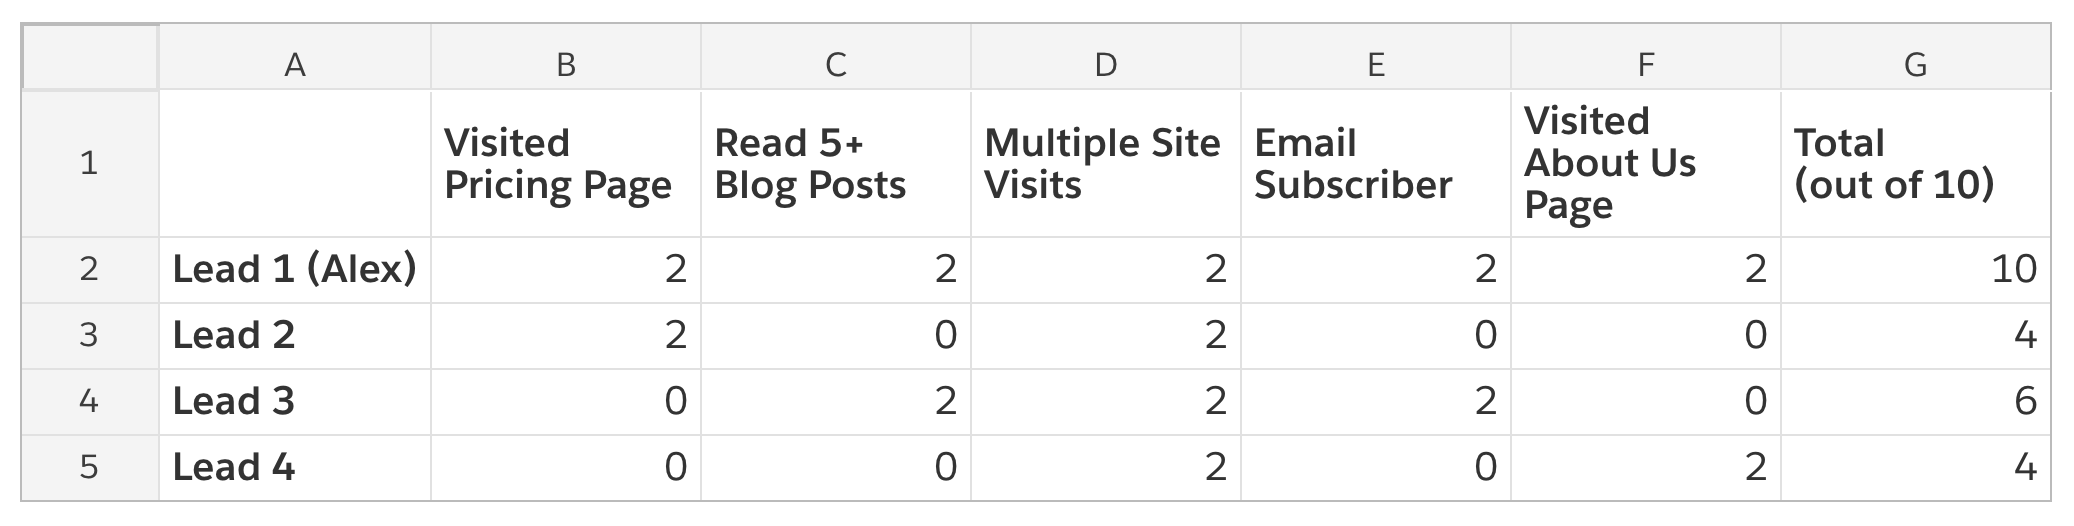 A screenshot of a lead score matrix with information including if they visited the pricing page, read more than five blog posts, visited the site multiple times, is subscribed to the email list, and if they visted the about us page.